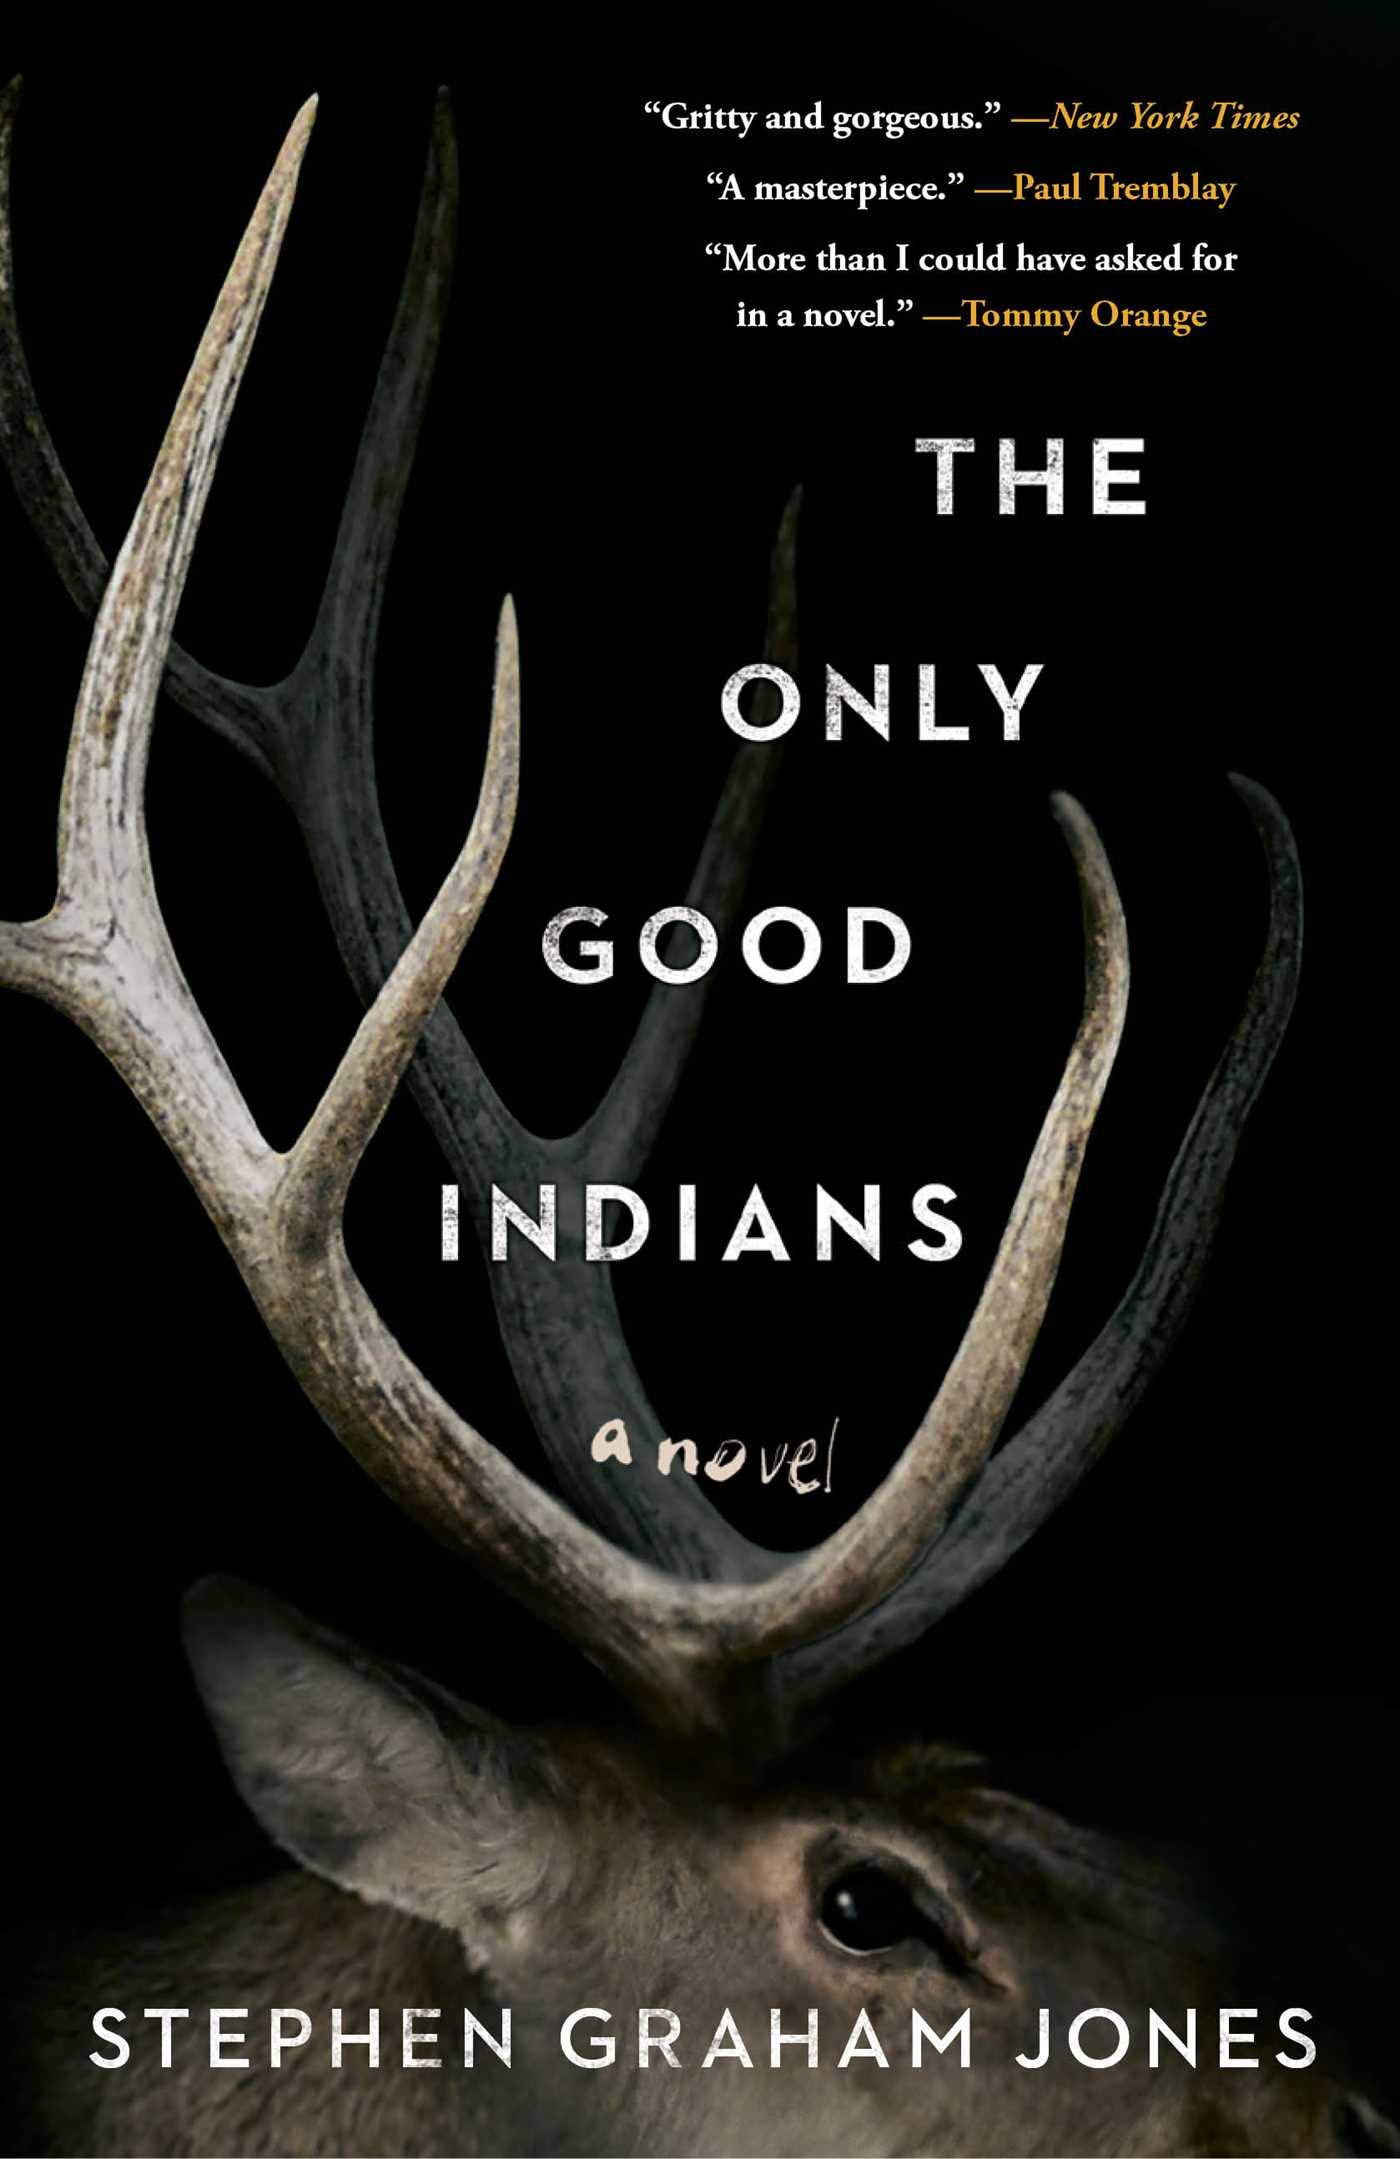 Amazon.com: The Only Good Indians (9781982136451): Jones, Stephen ...